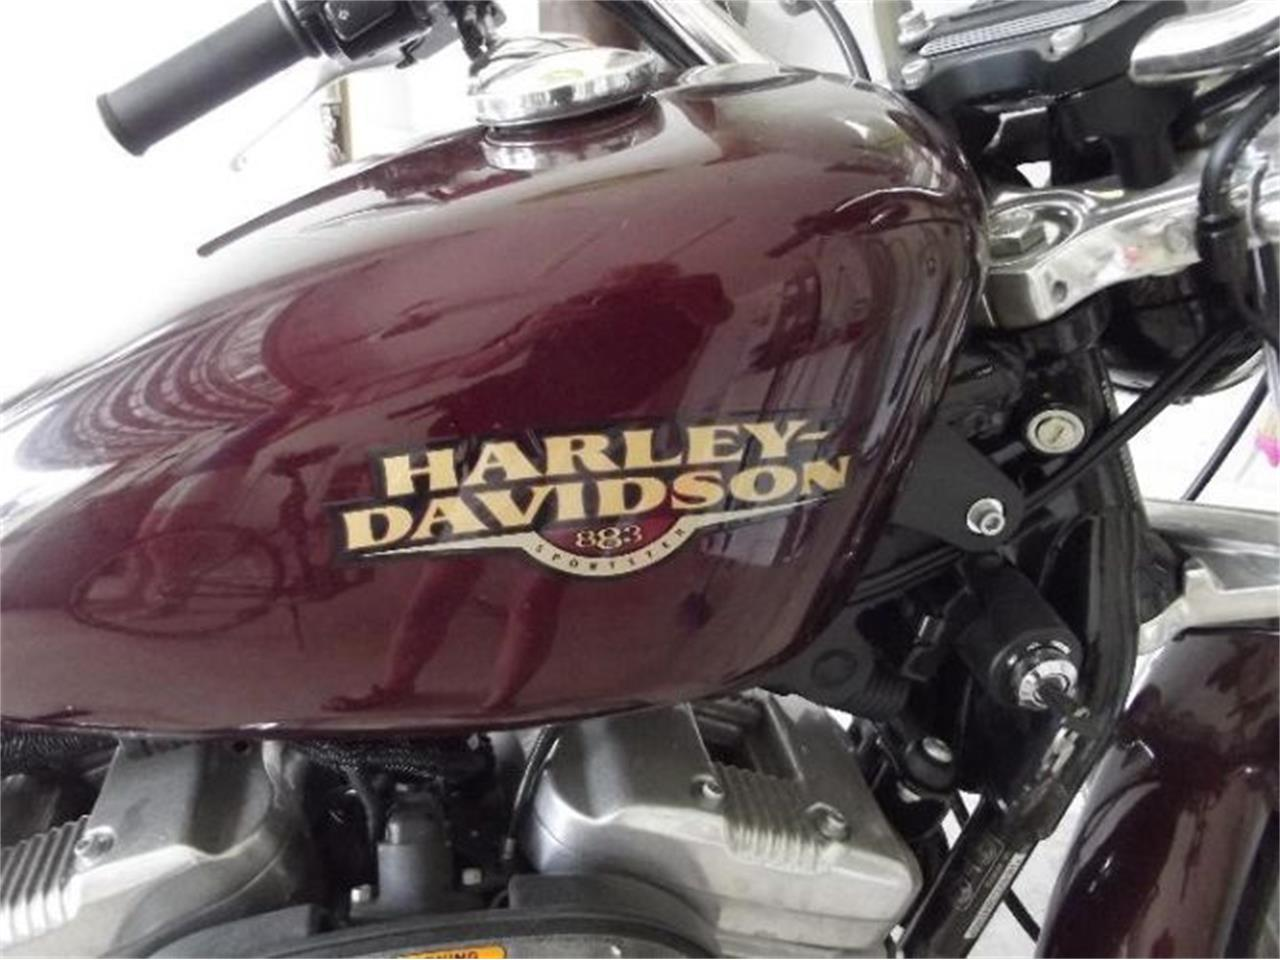 2008 Harley-Davidson Sportster (CC-1211536) for sale in Cadillac, Michigan